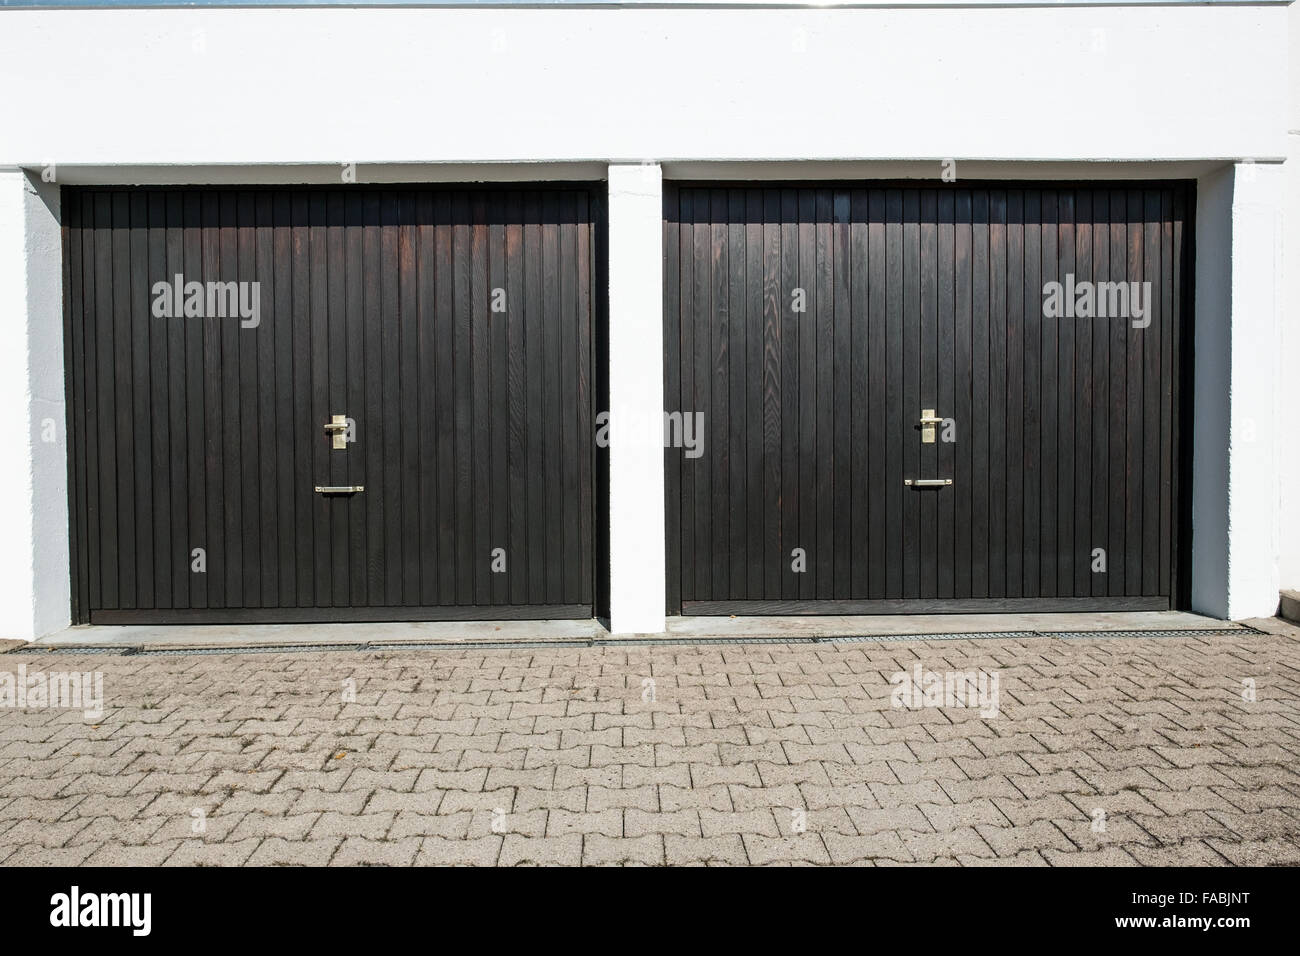 Driveway With 2 Garage Doors With Knobs And Lockers Stock Photo Alamy